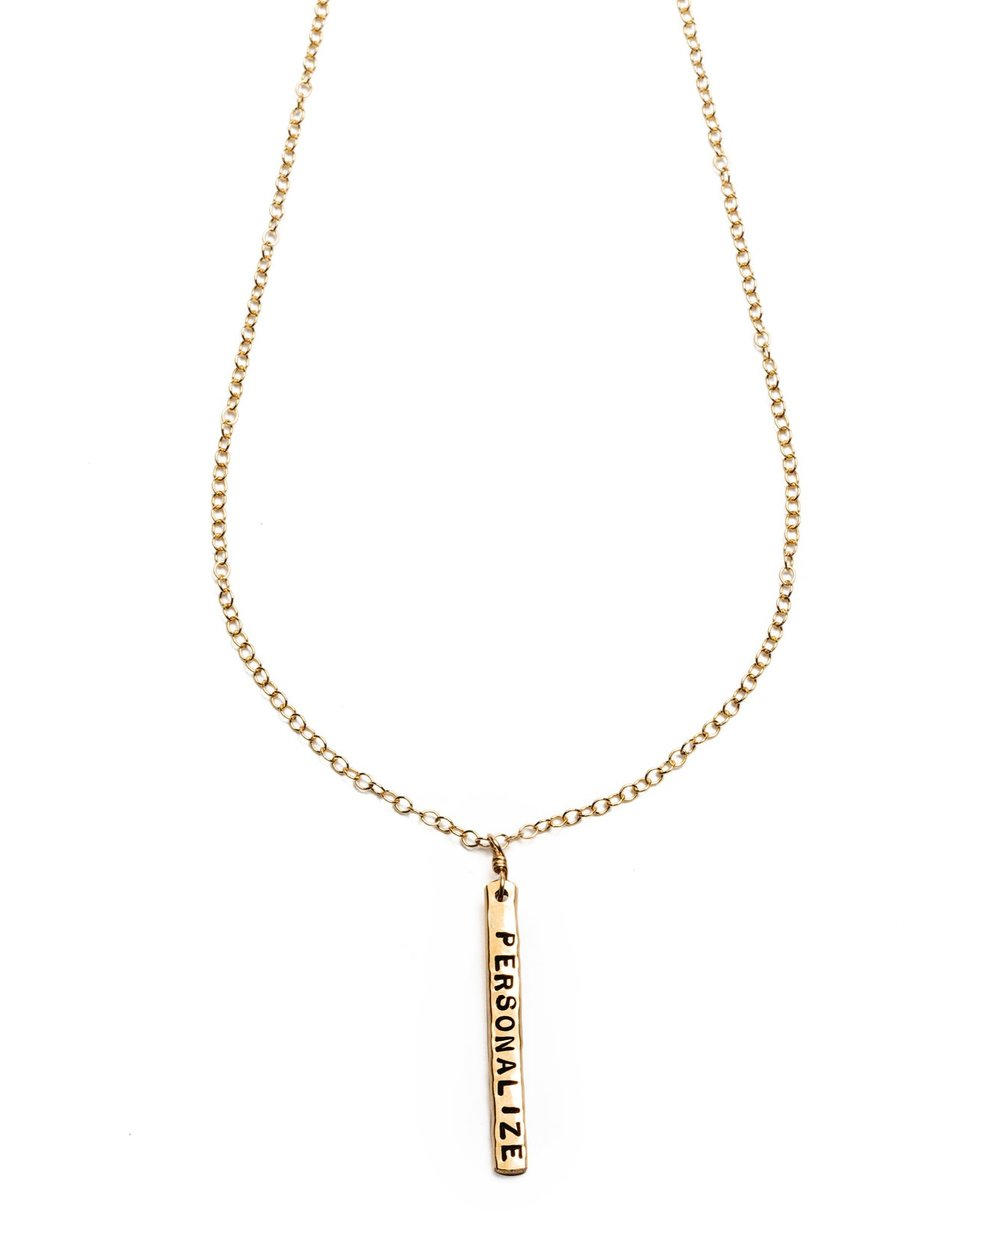 Customizable Vertical Zayit Bar necklace